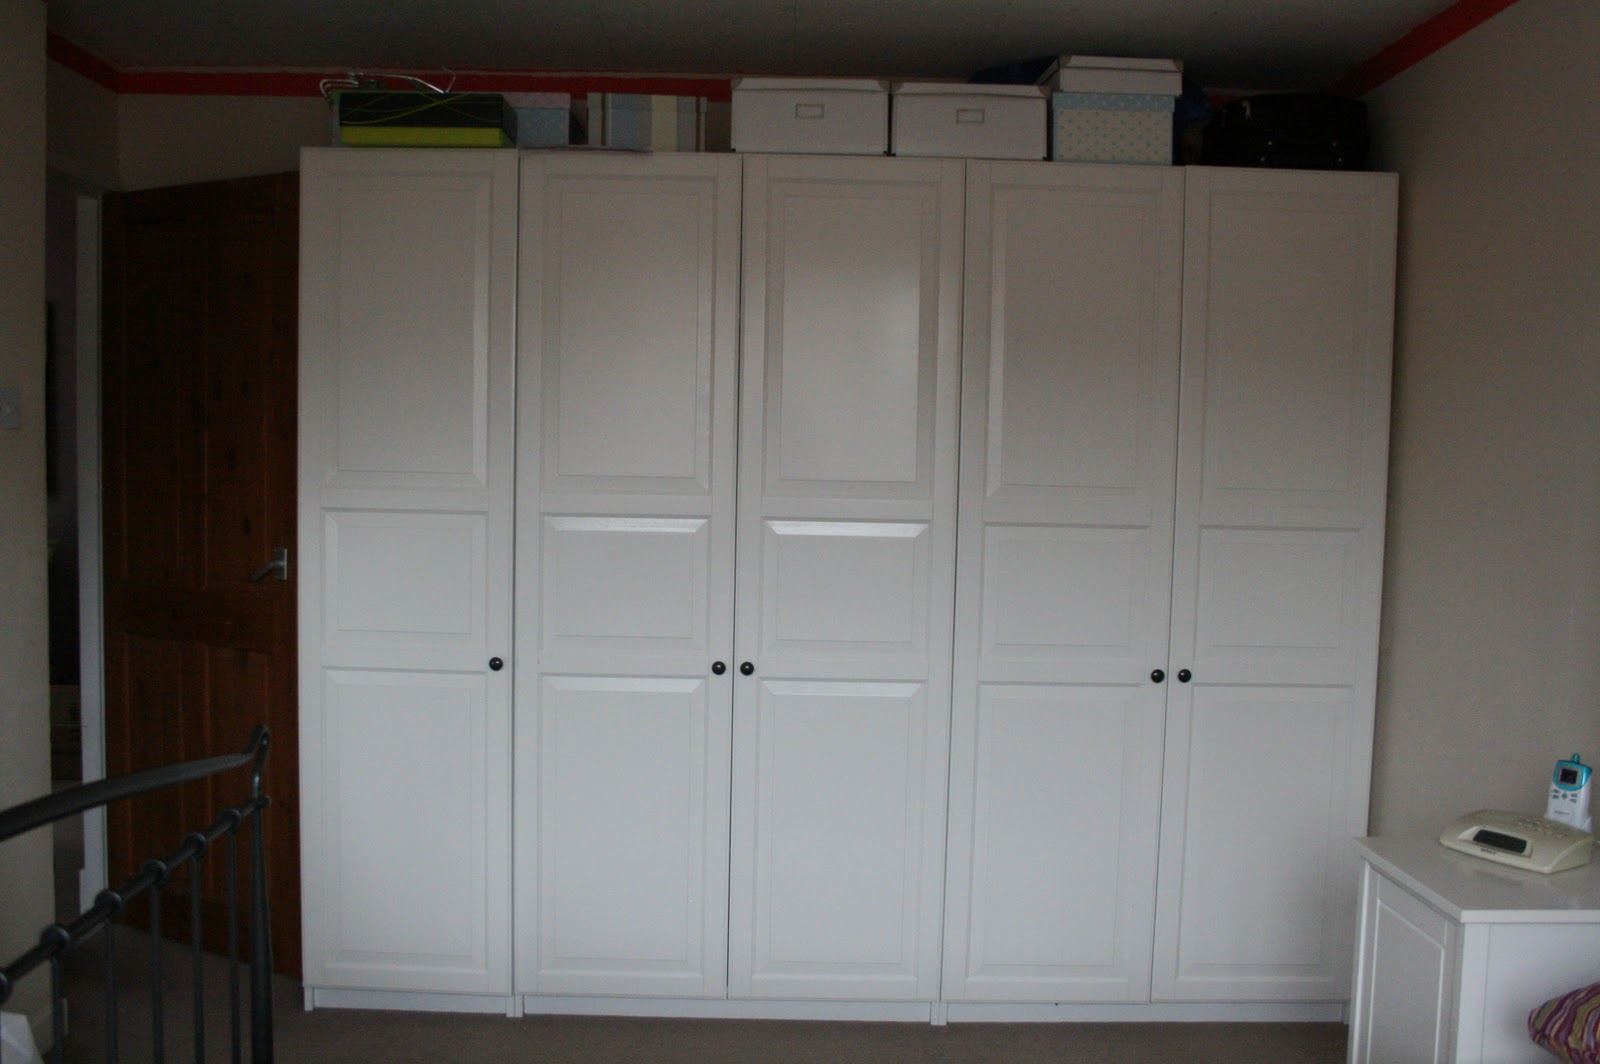 20110218-wardrobes-before-ikea-pax-1